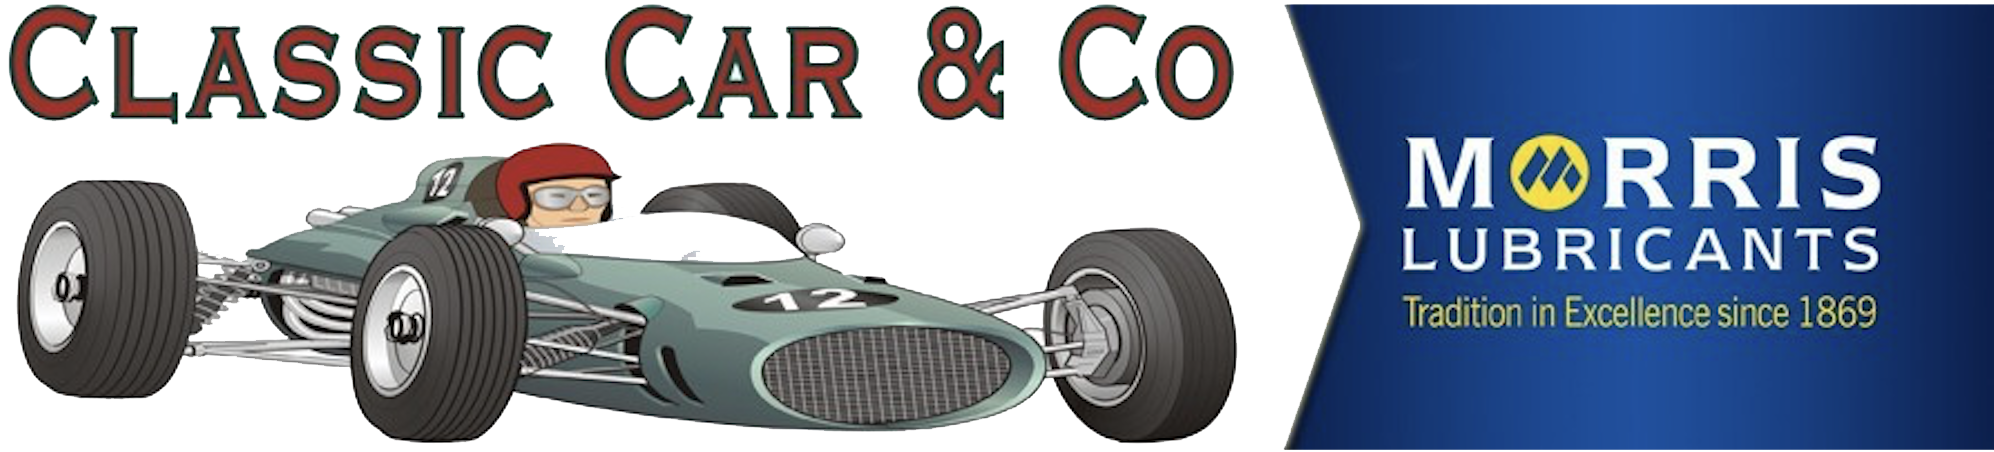 Classic Cars and Co - Huiles moteur Morris Lubricants - Autos - Motos